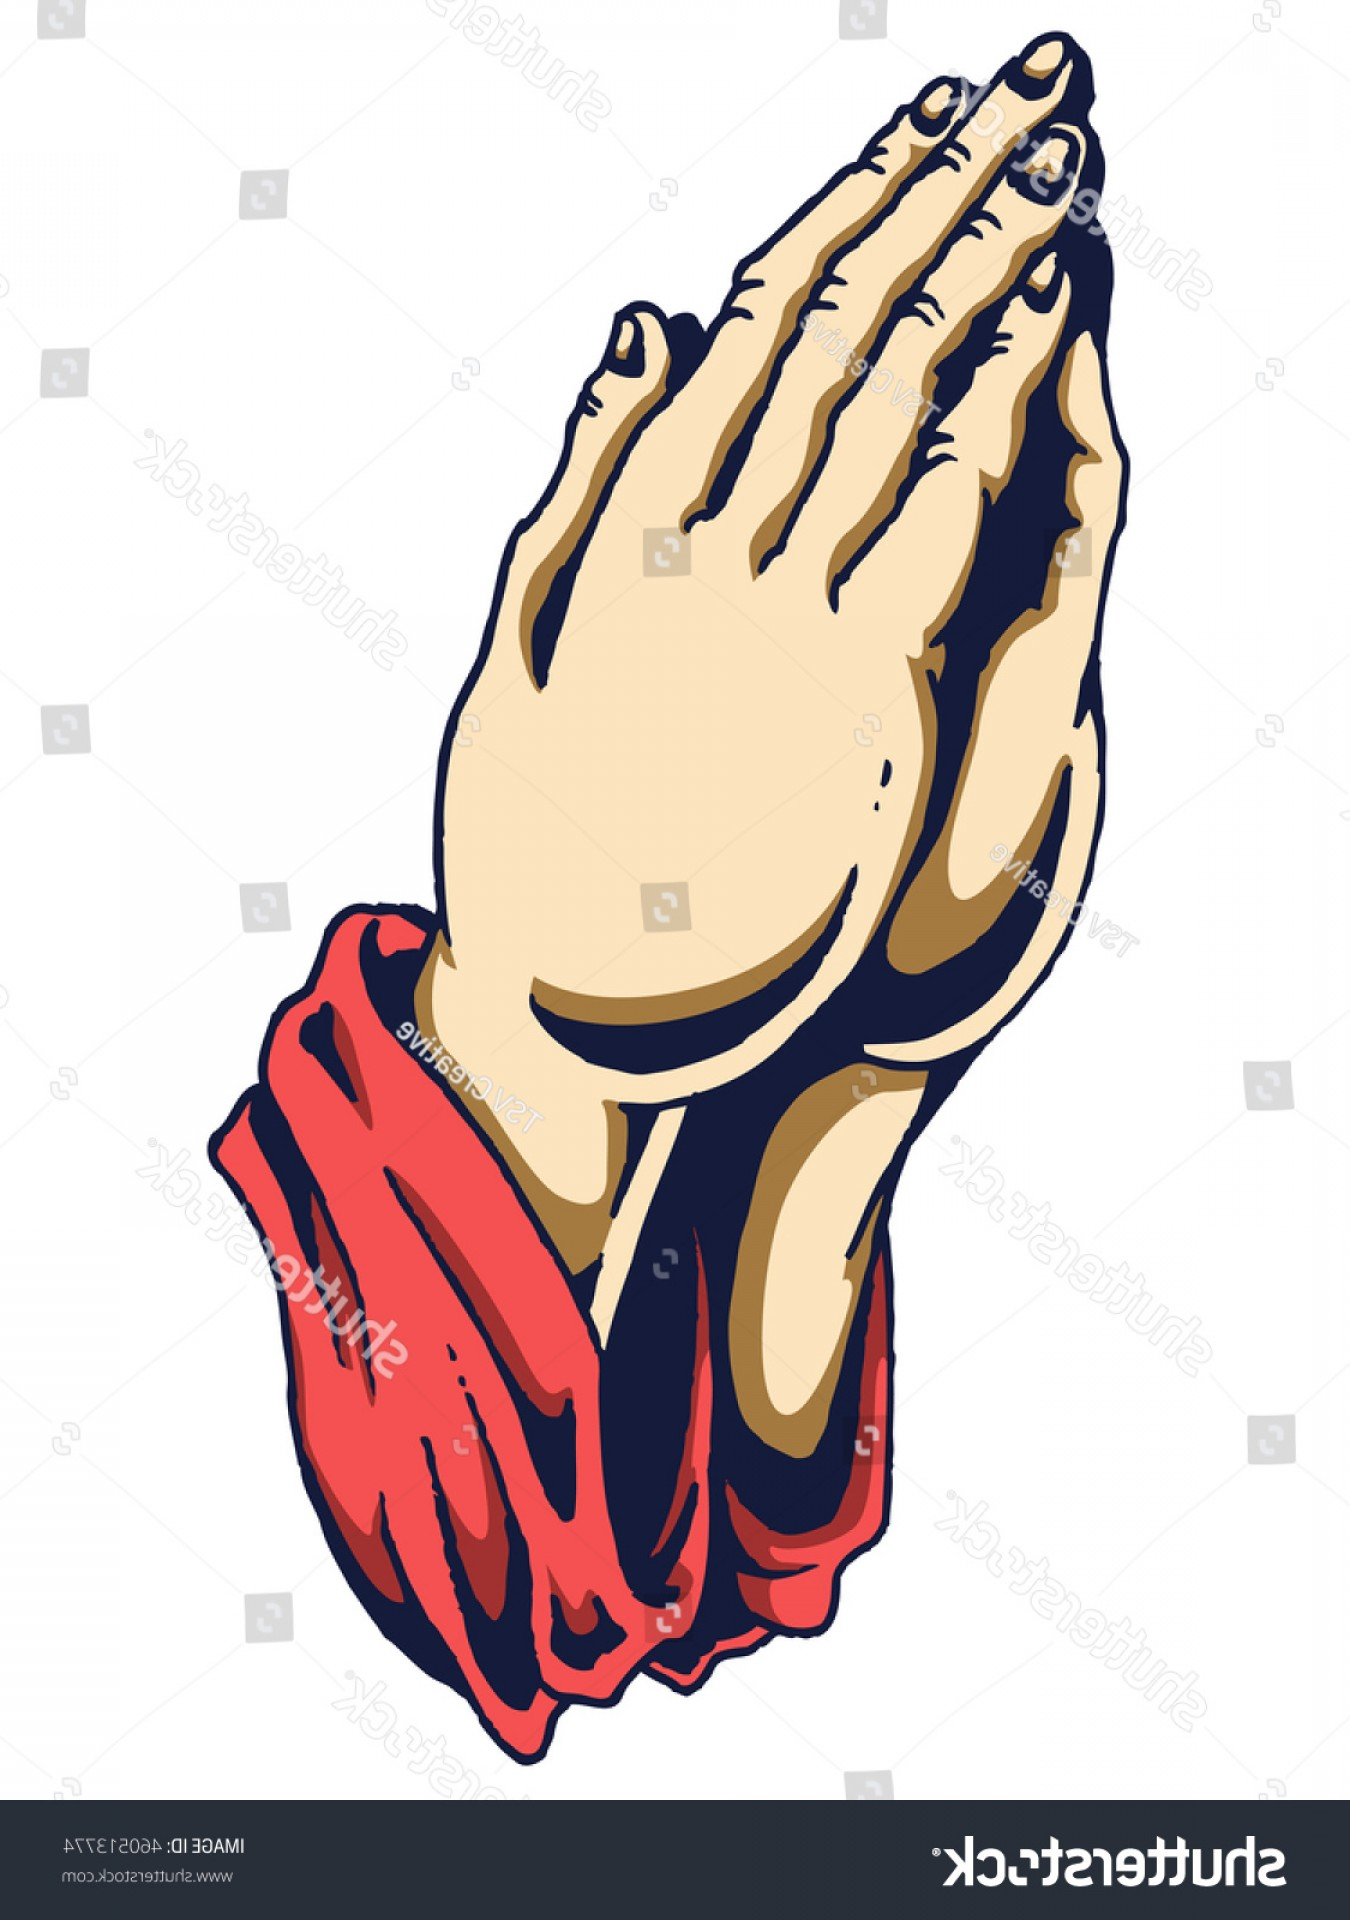 Praying Hands Vectors Shutterstock: Vector Illustration Human Hand Praying Position